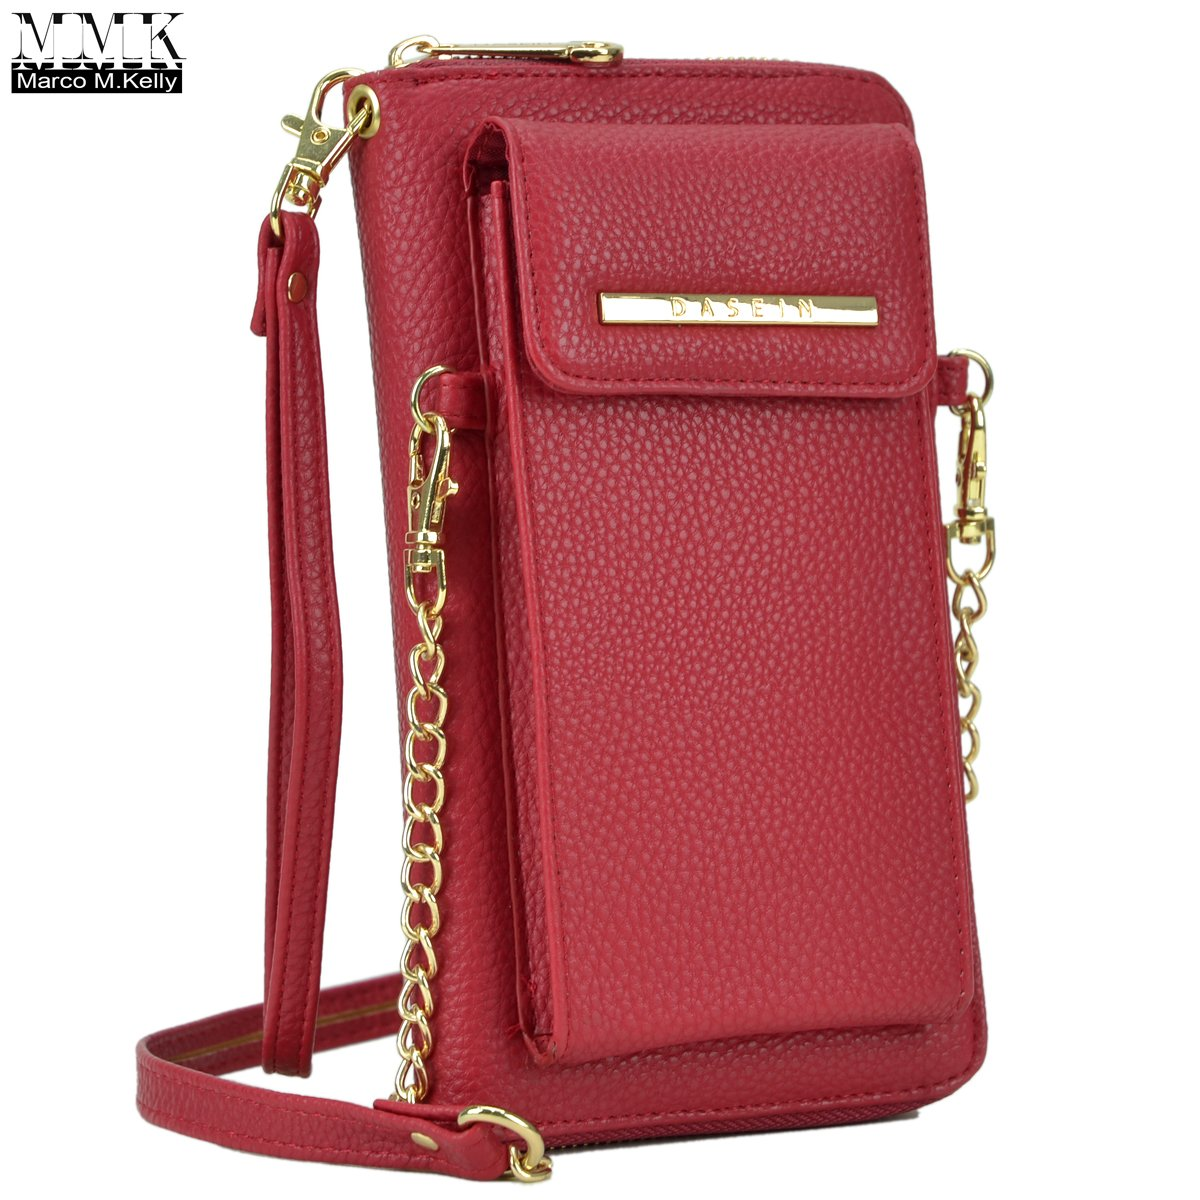 MMK Collection Easy-To-Carry Small Size Women Crossbody Wallet, Organizer pouch, with Phone case and Detachable Chain Strap(3020) (MA-3020-RD)